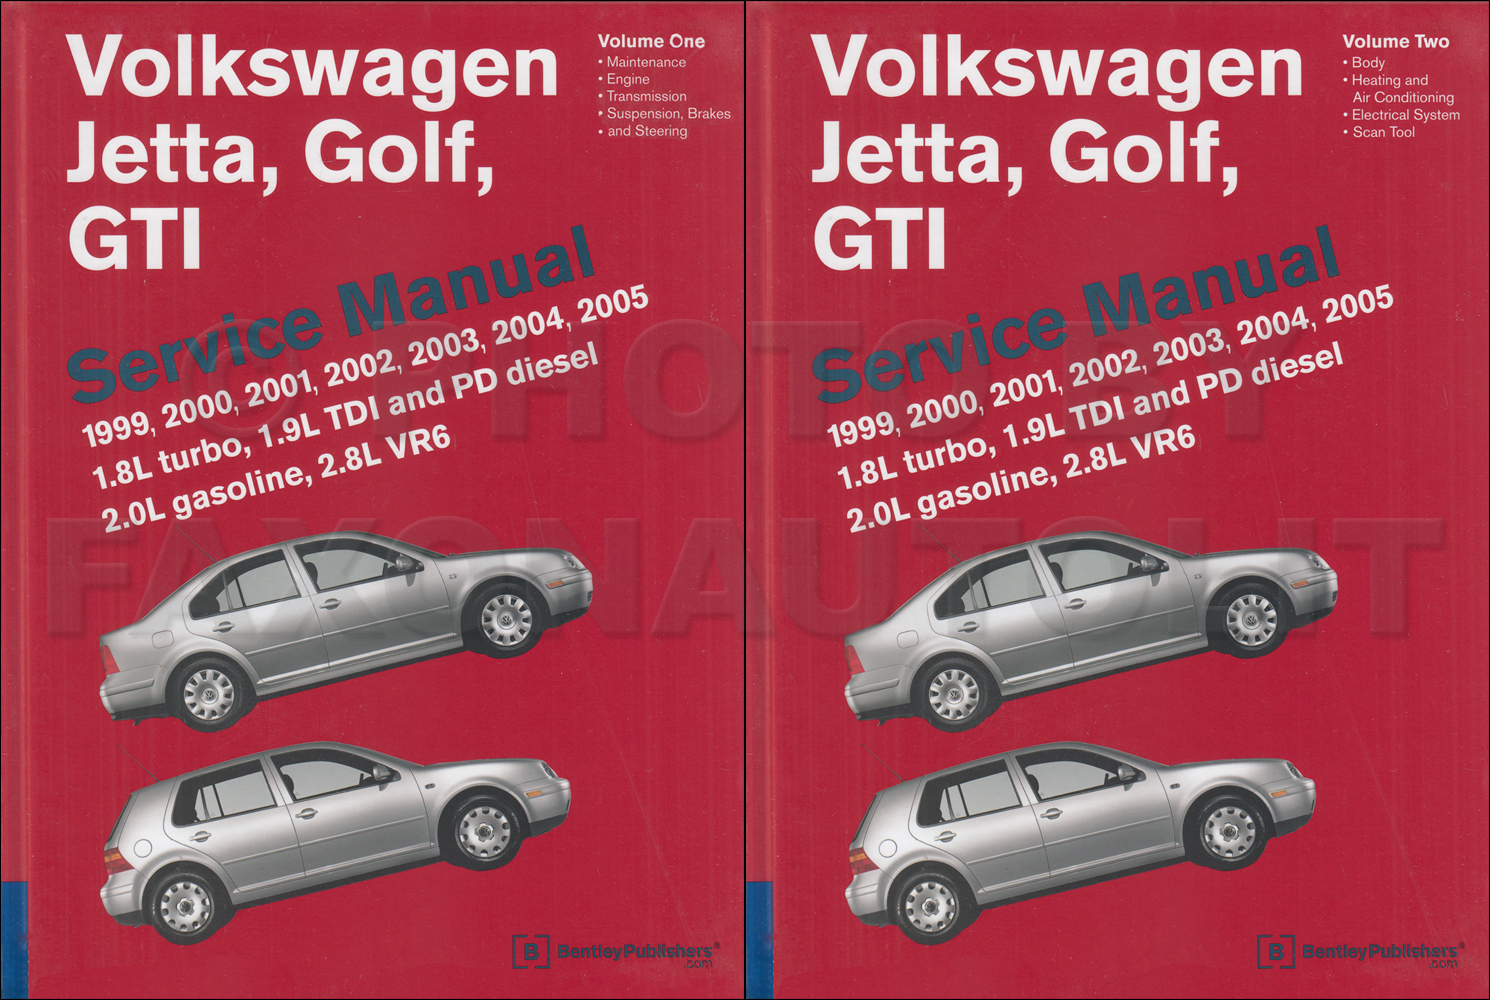 1999-2005 VW Jetta, Golf, GTI Bentley Repair Shop Manual $129.00